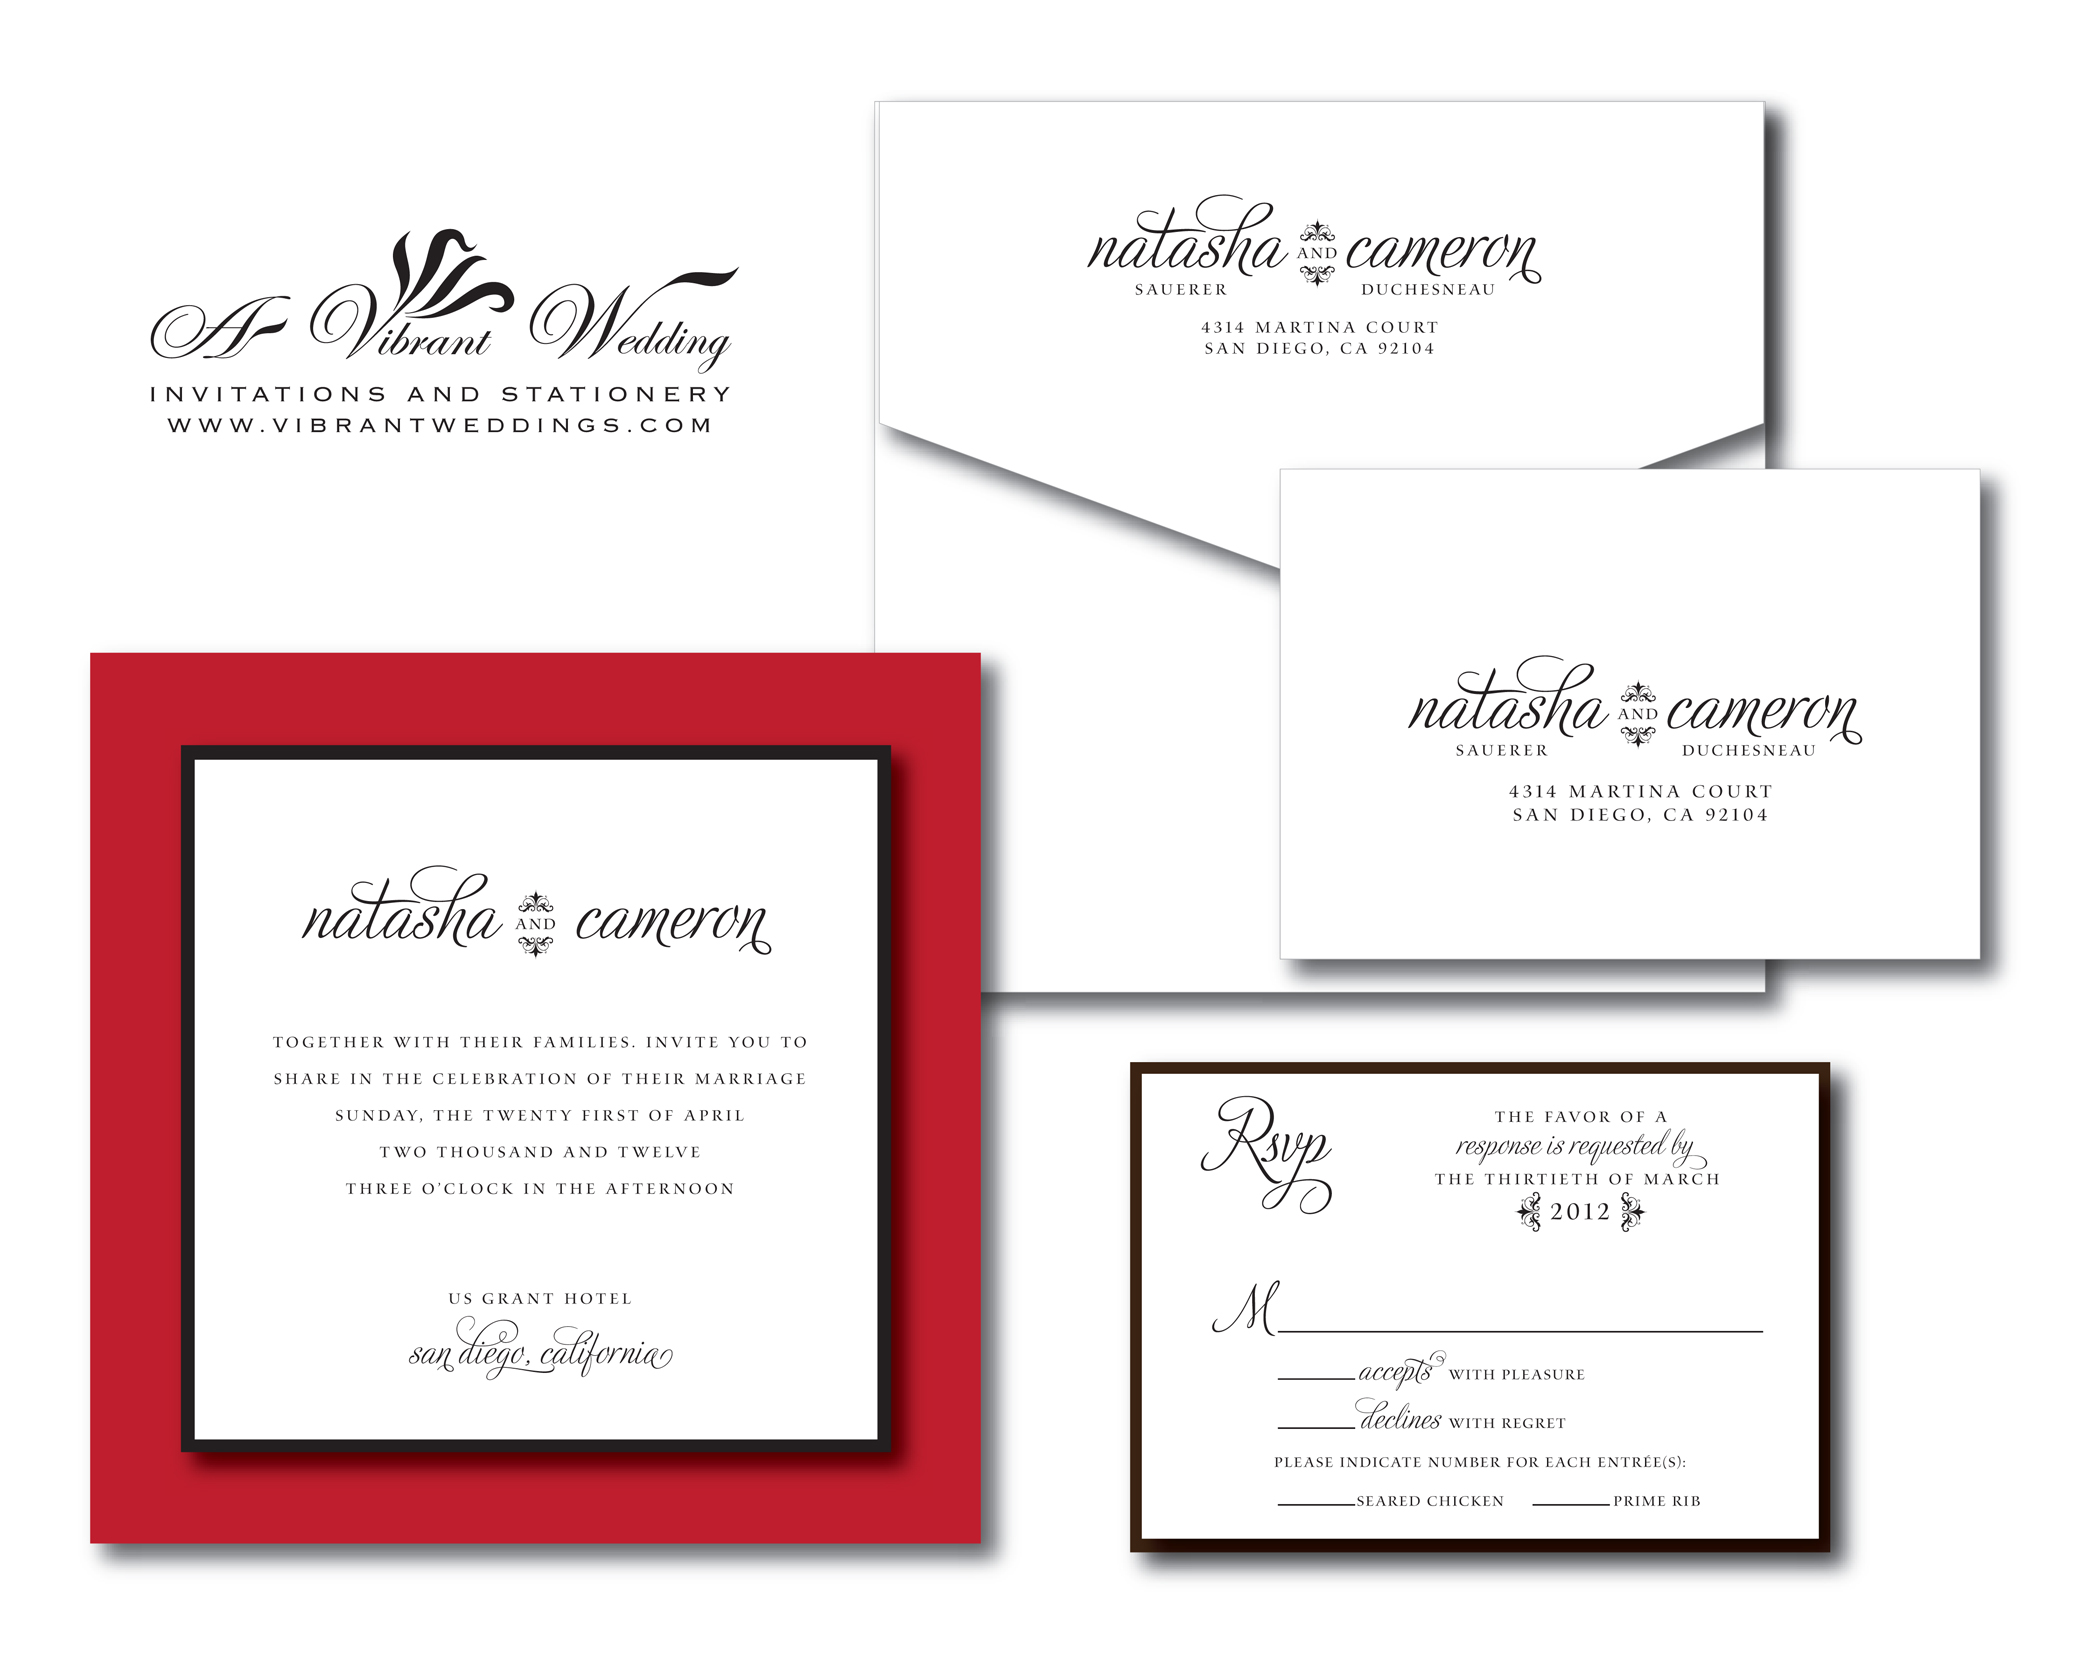 Red And White Wedding Invitation A Vibrant Wedding